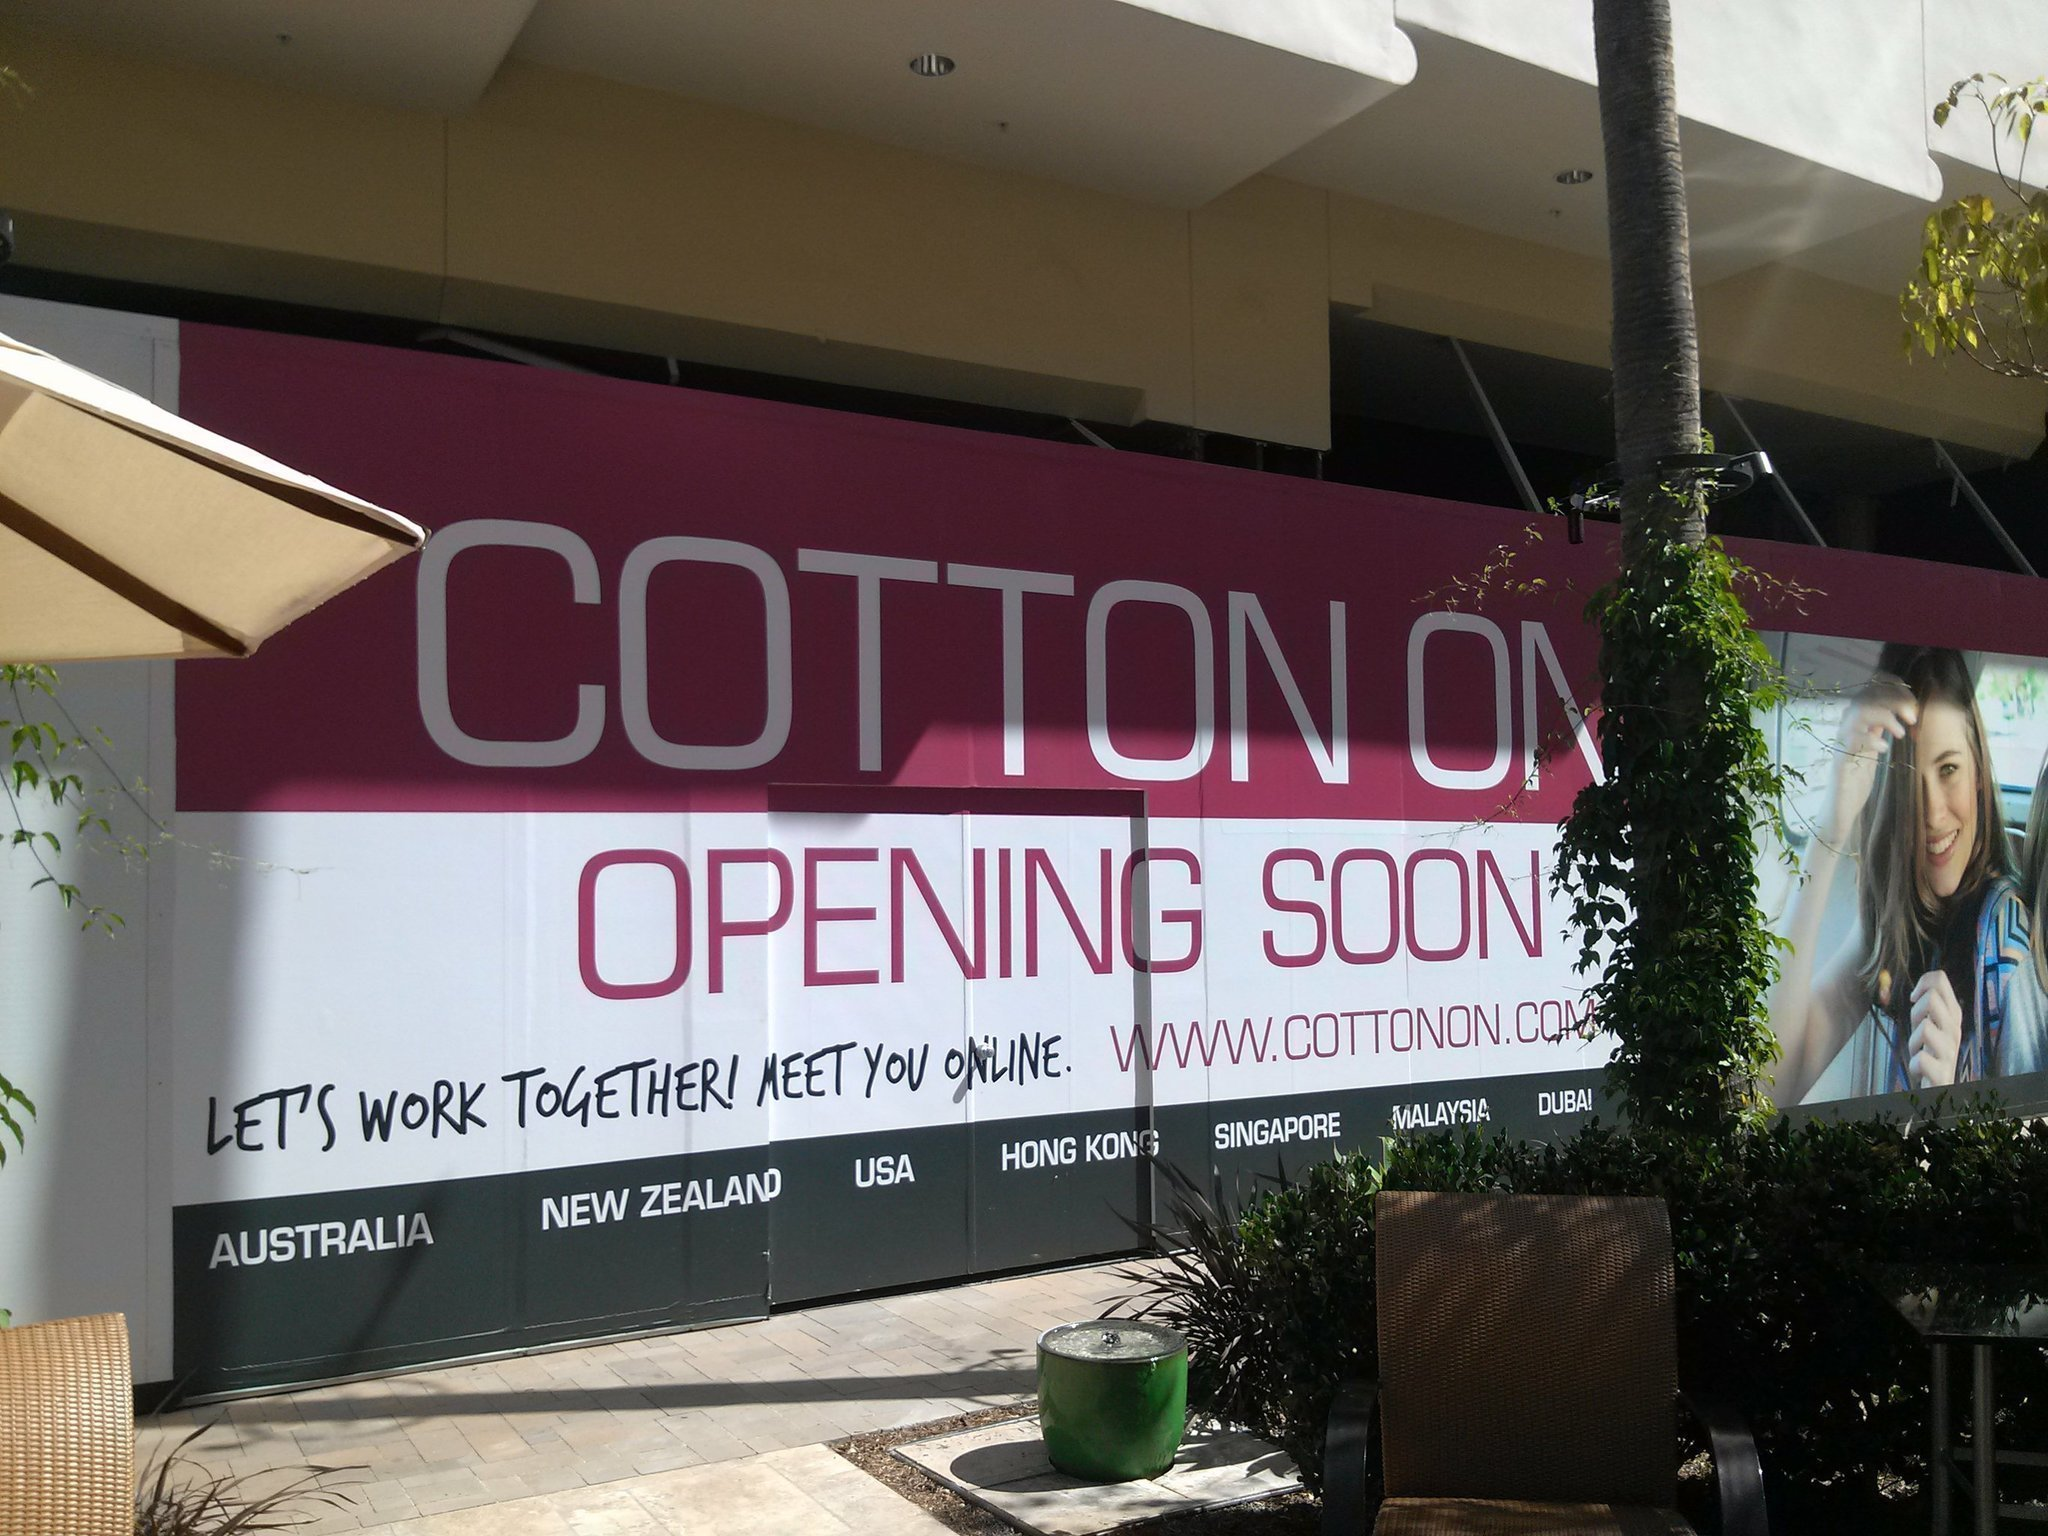 fashion valley u0026 39 s new stores  cotton on and more